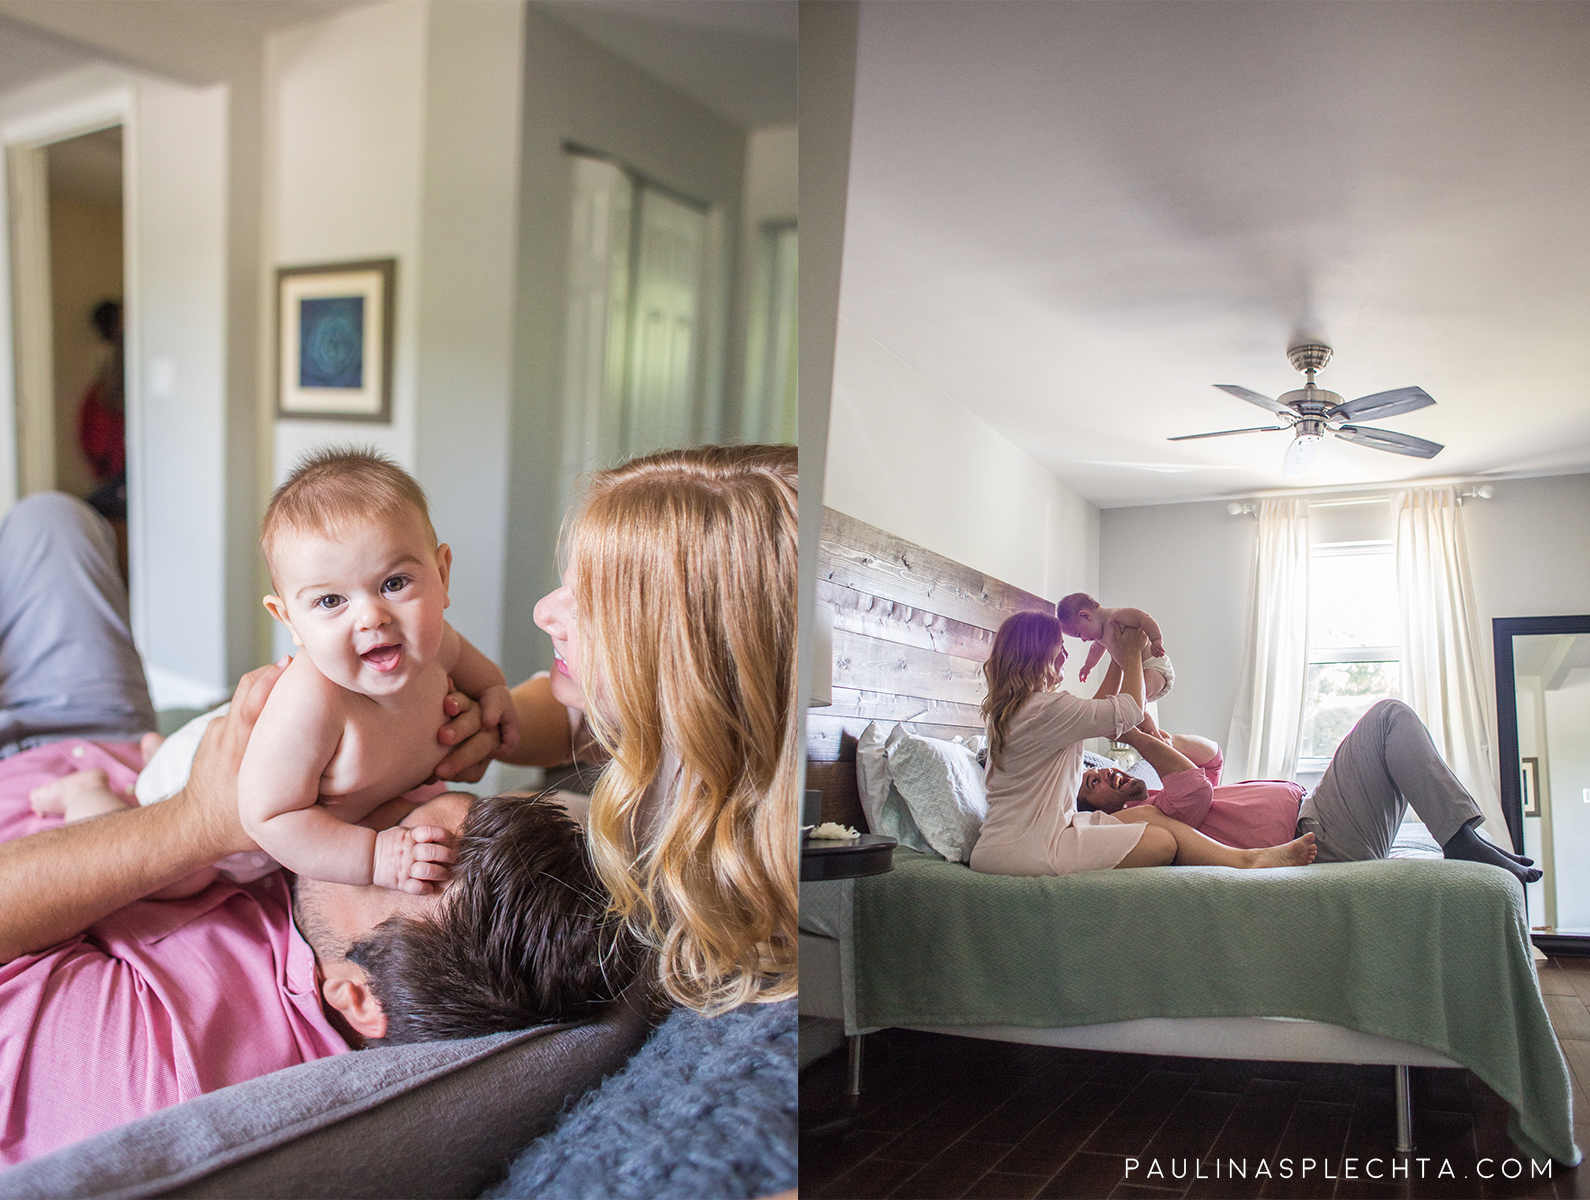 delray-beach-family-documentary-photographer-lifestyle-candid-west-palm-boca-raton-south-florida-baby-home-six-months-cake-smash.png